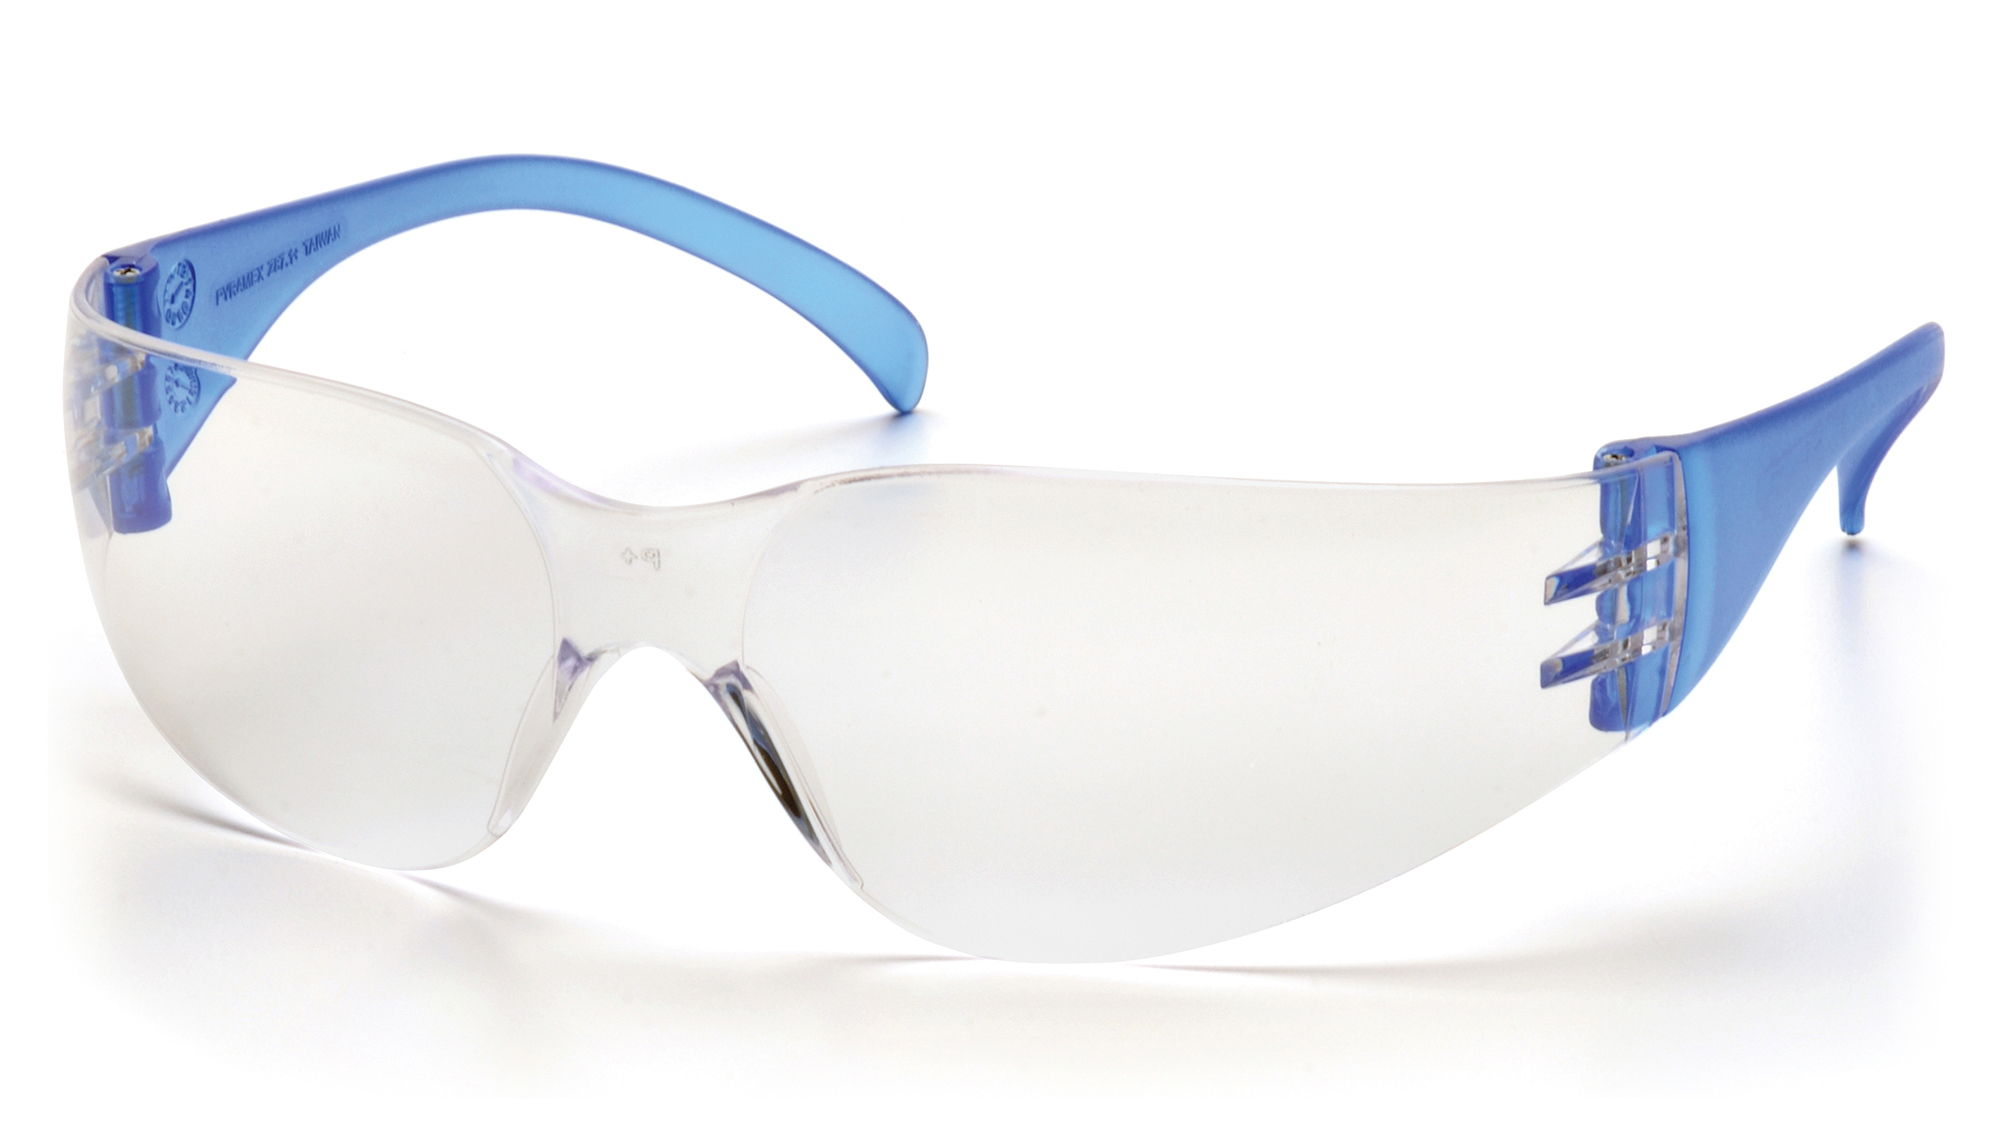 Intruder Safety Glasses - Clear Hard-Coated Lens Blue Temples